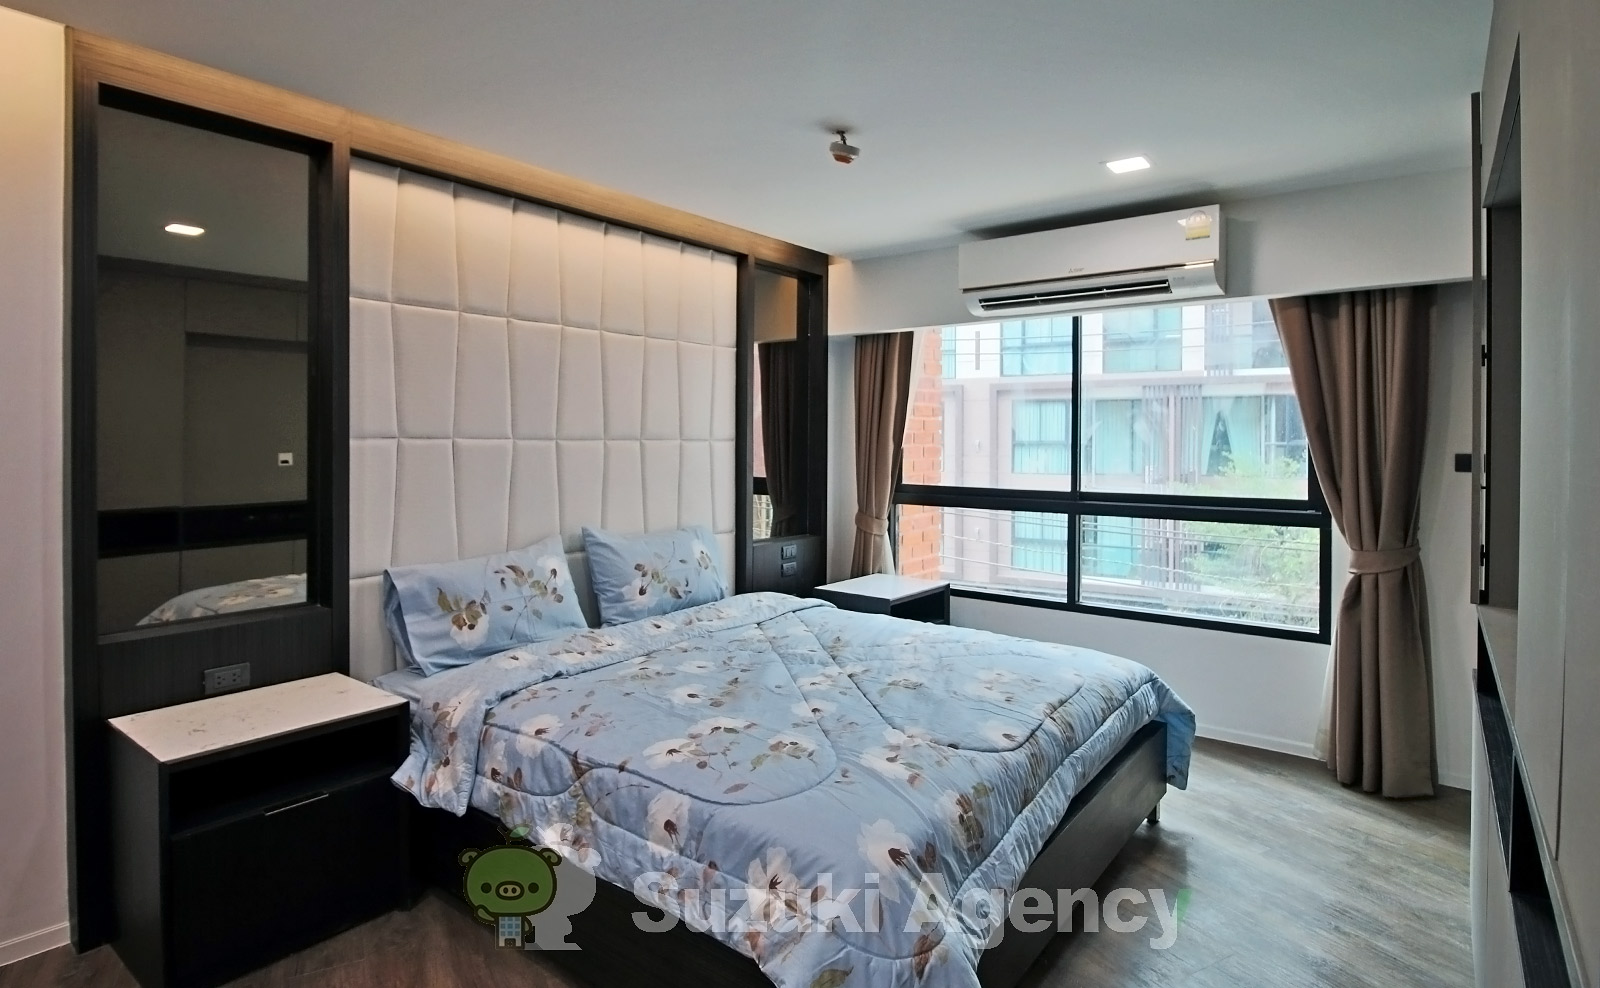 Kasturi Residence:2Bed Room Photos No.7